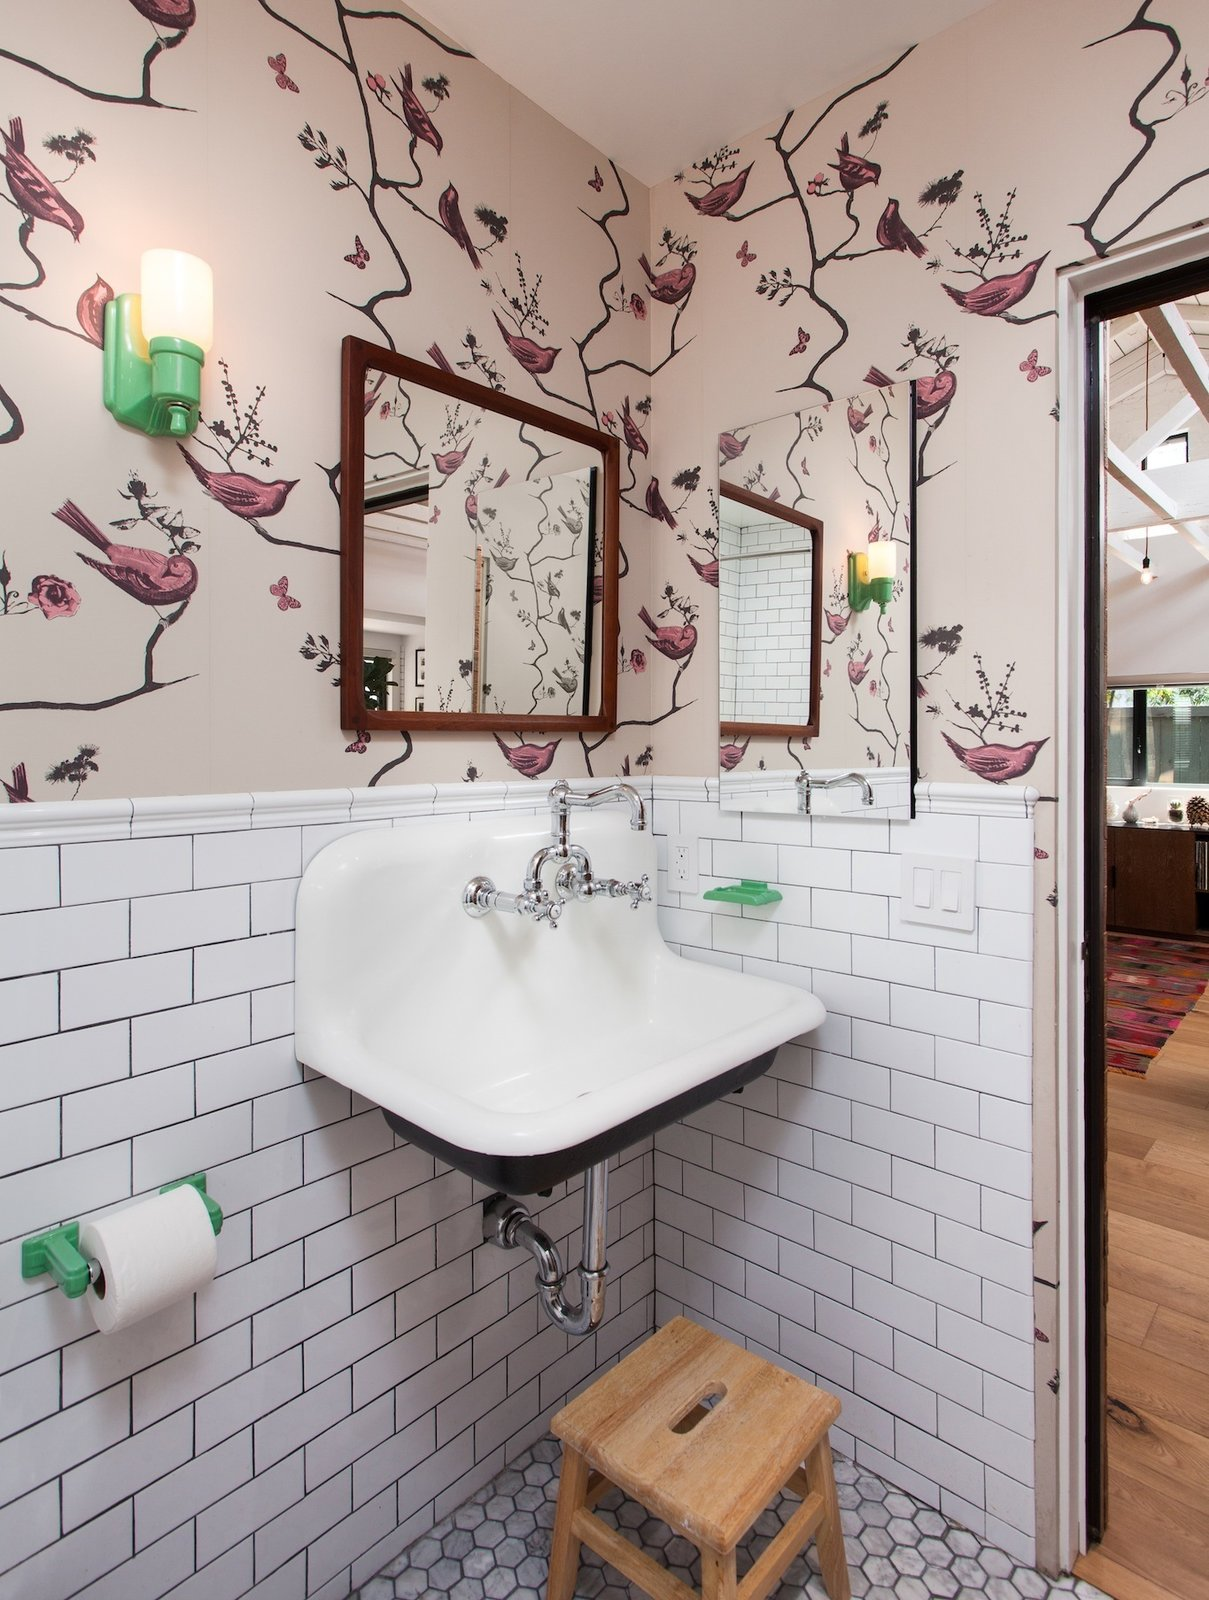 Kid's Bathroom with playful wallpaper, subway tile and colorful bathroom accessories